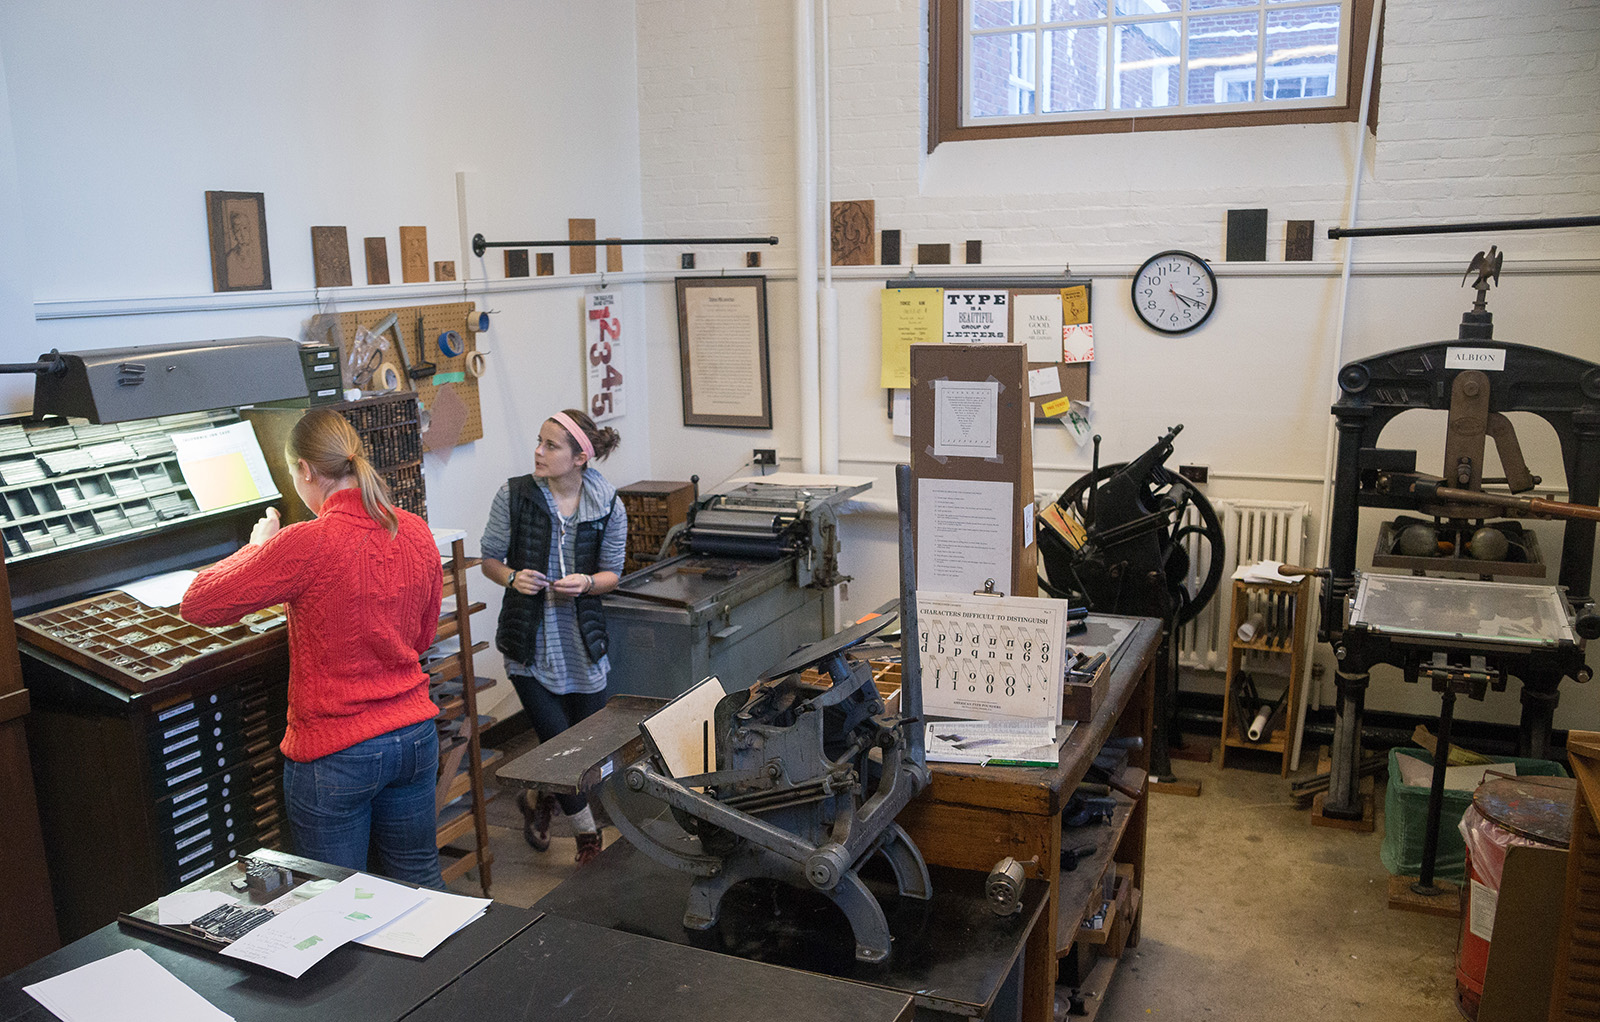 Students working in the Letterpress Studio with presses and metal type